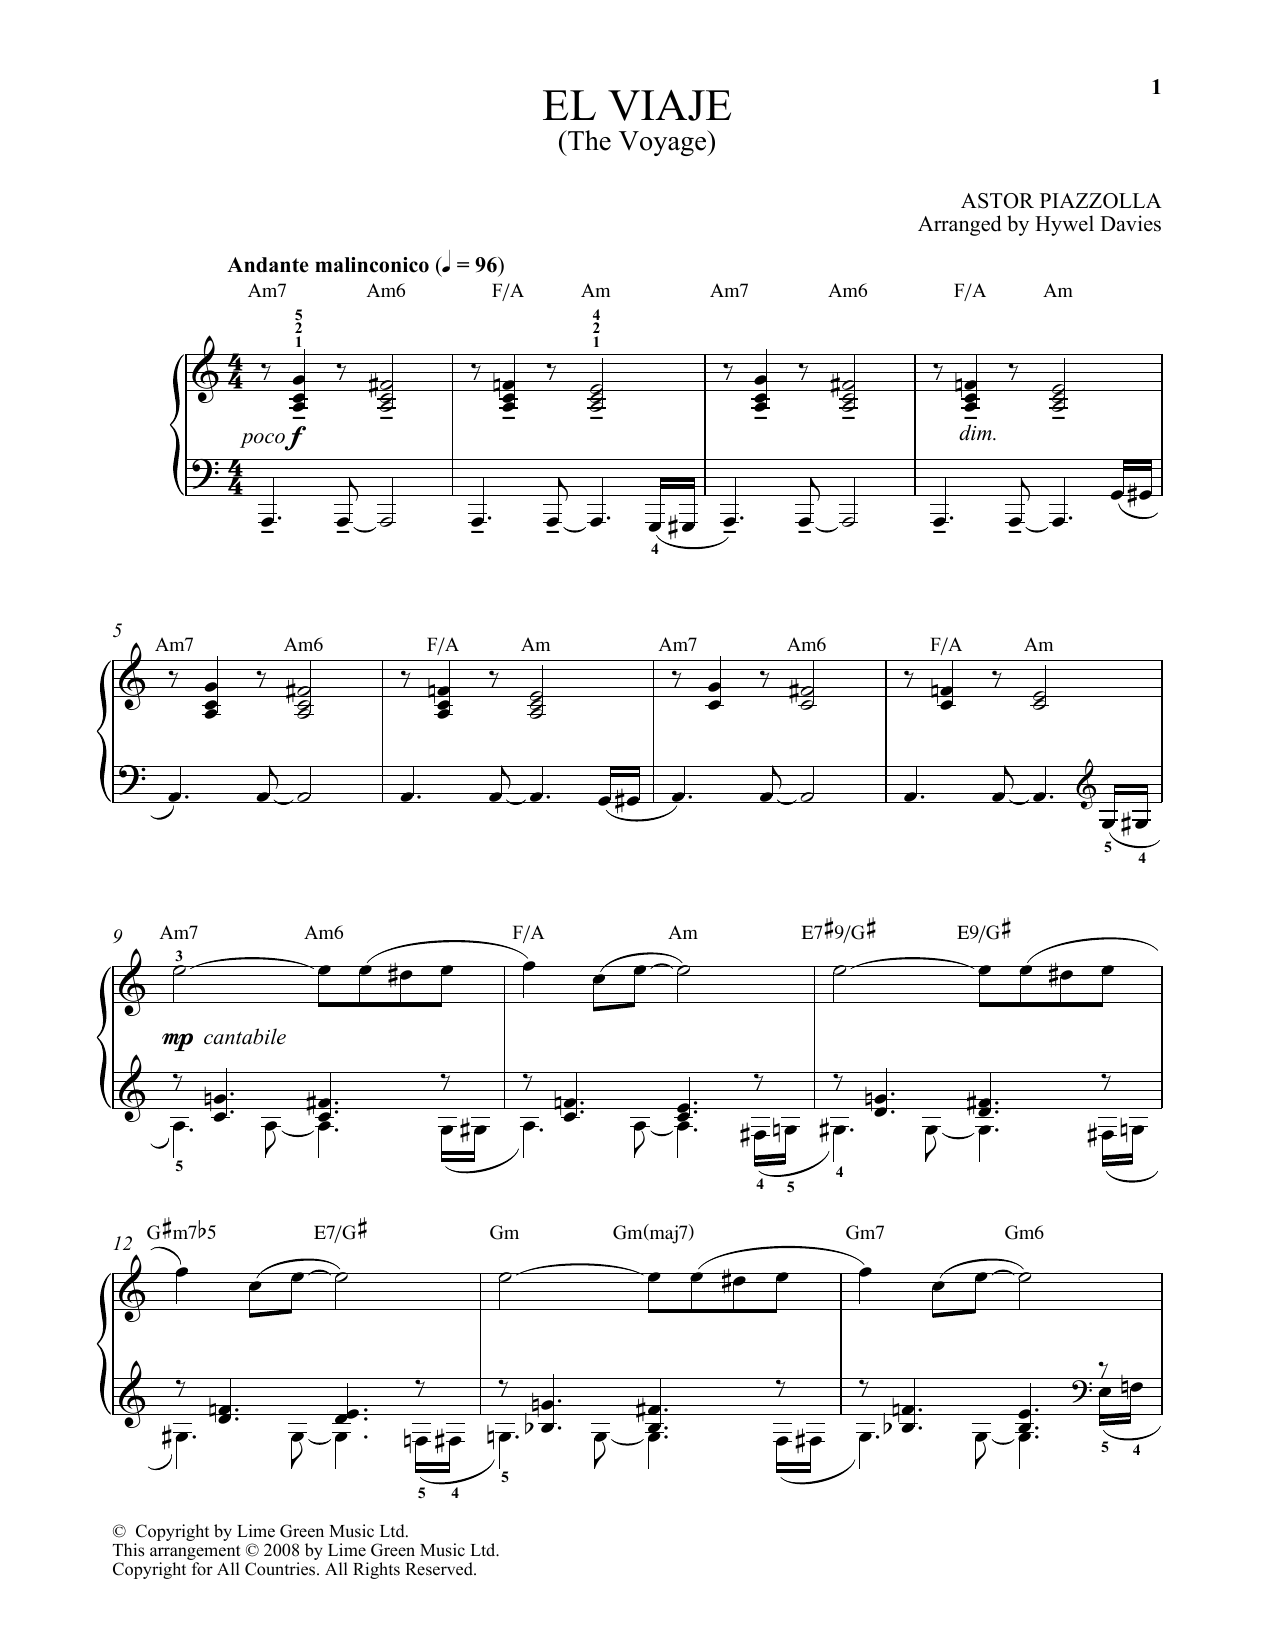 Astor Piazzolla El Viaje sheet music notes and chords